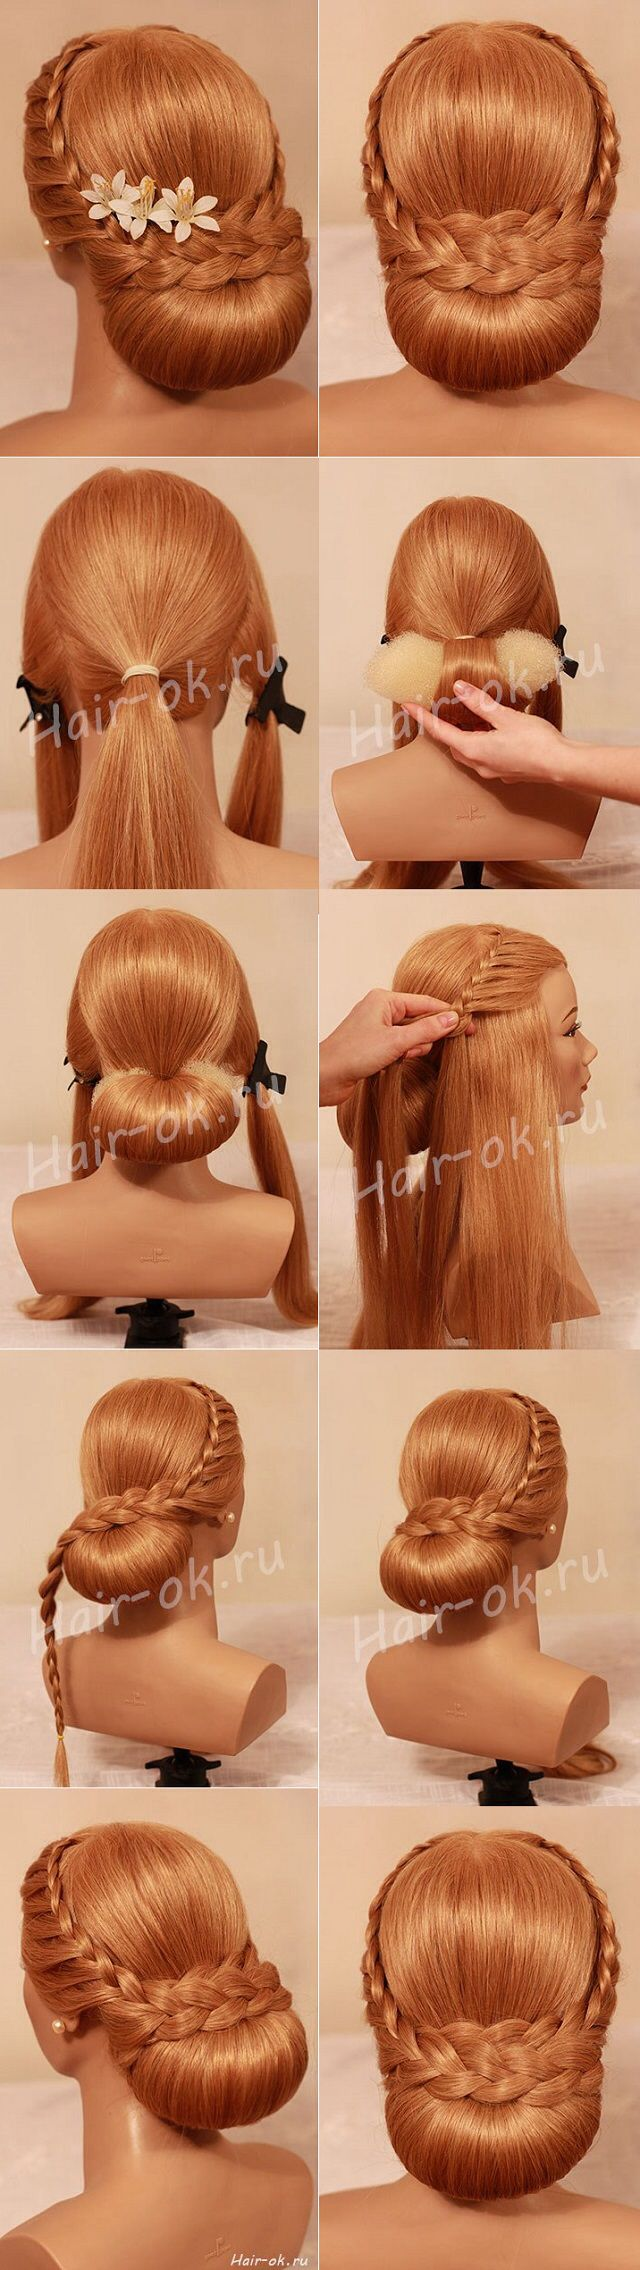 Hairstyle for long hair: instruction. Evening and everyday hairstyles 53